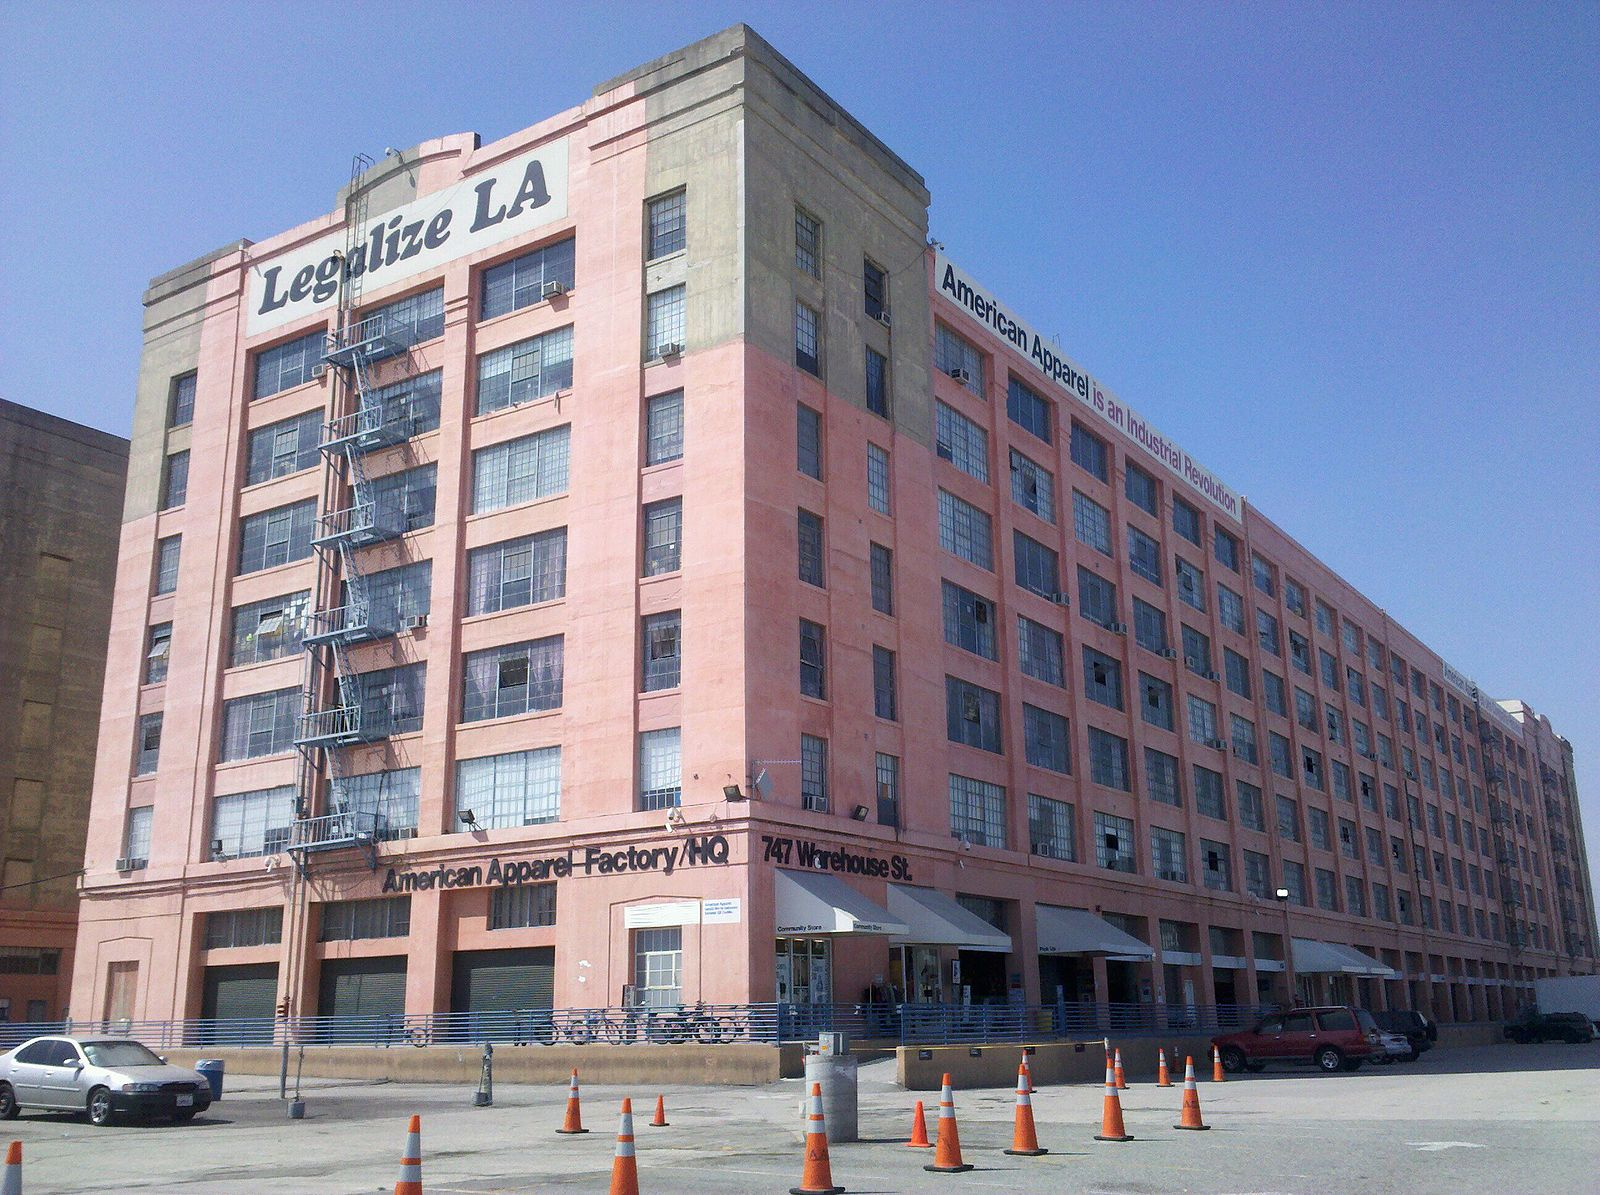 https://commons.wikimedia.org/wiki/File:American_Apparel_Factory_HQ_-_panoramio.jpg